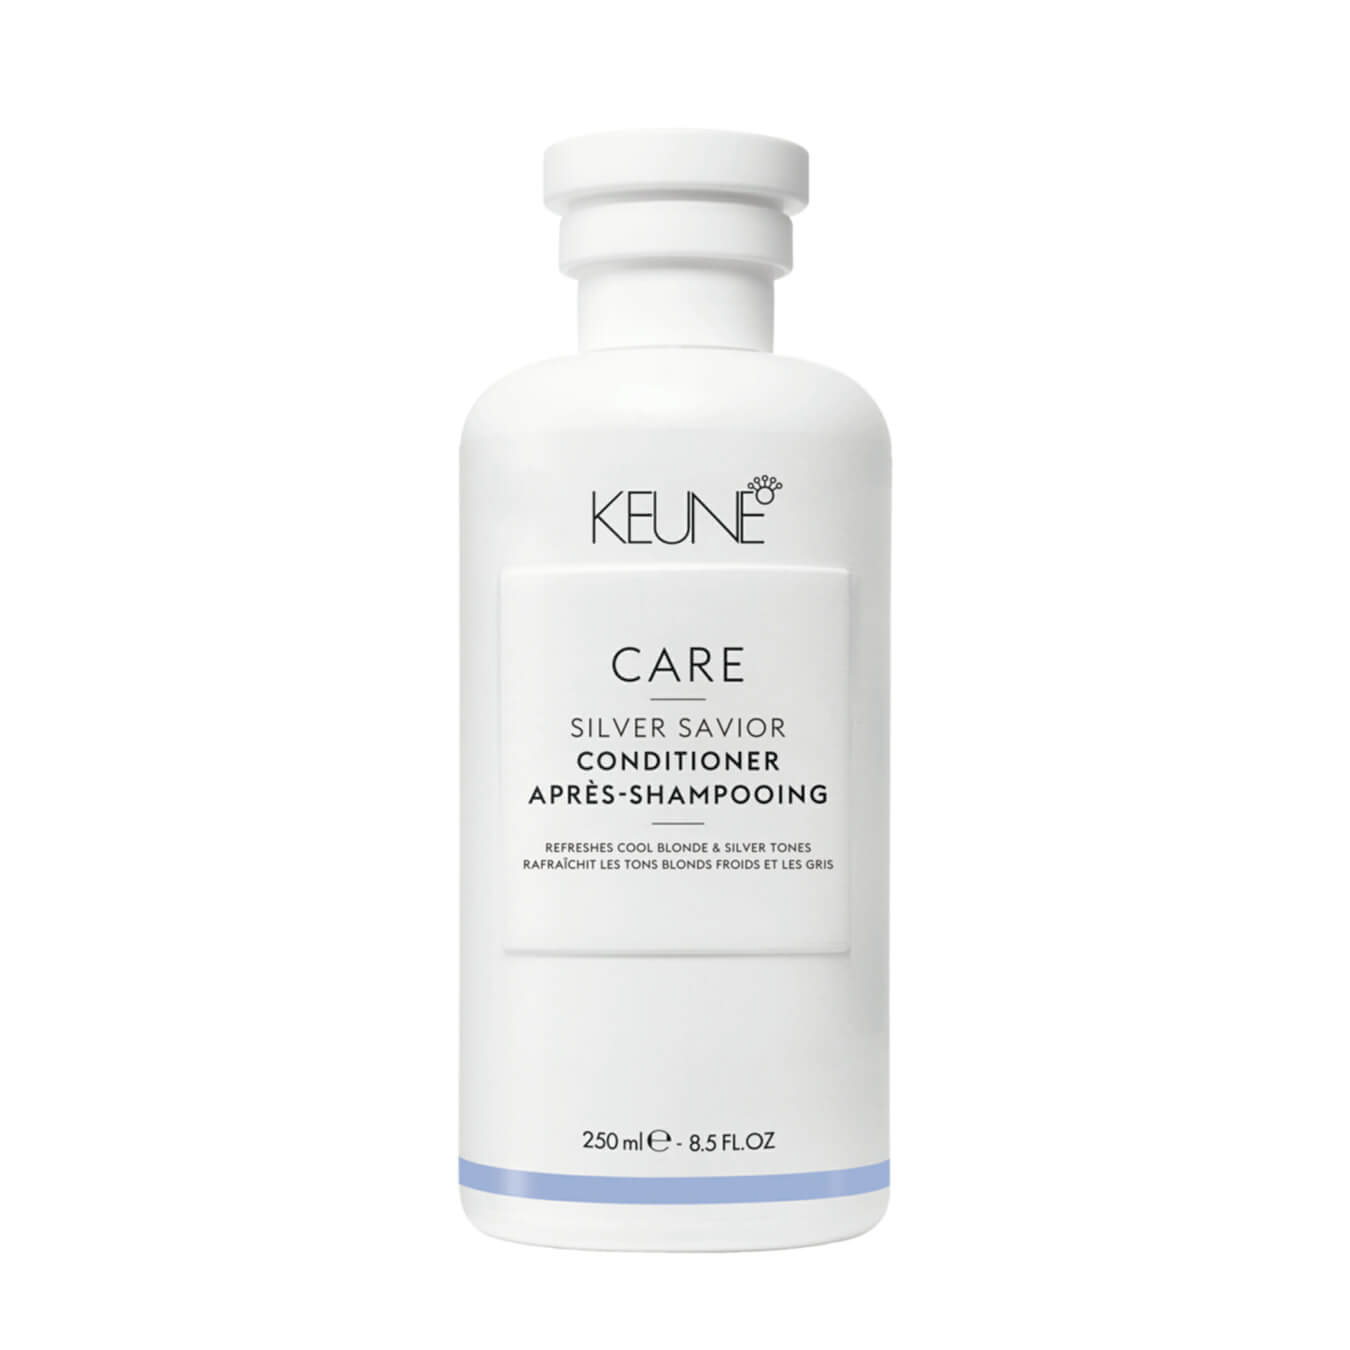 Koop Keune Care Silver Savior Conditioner 250ml